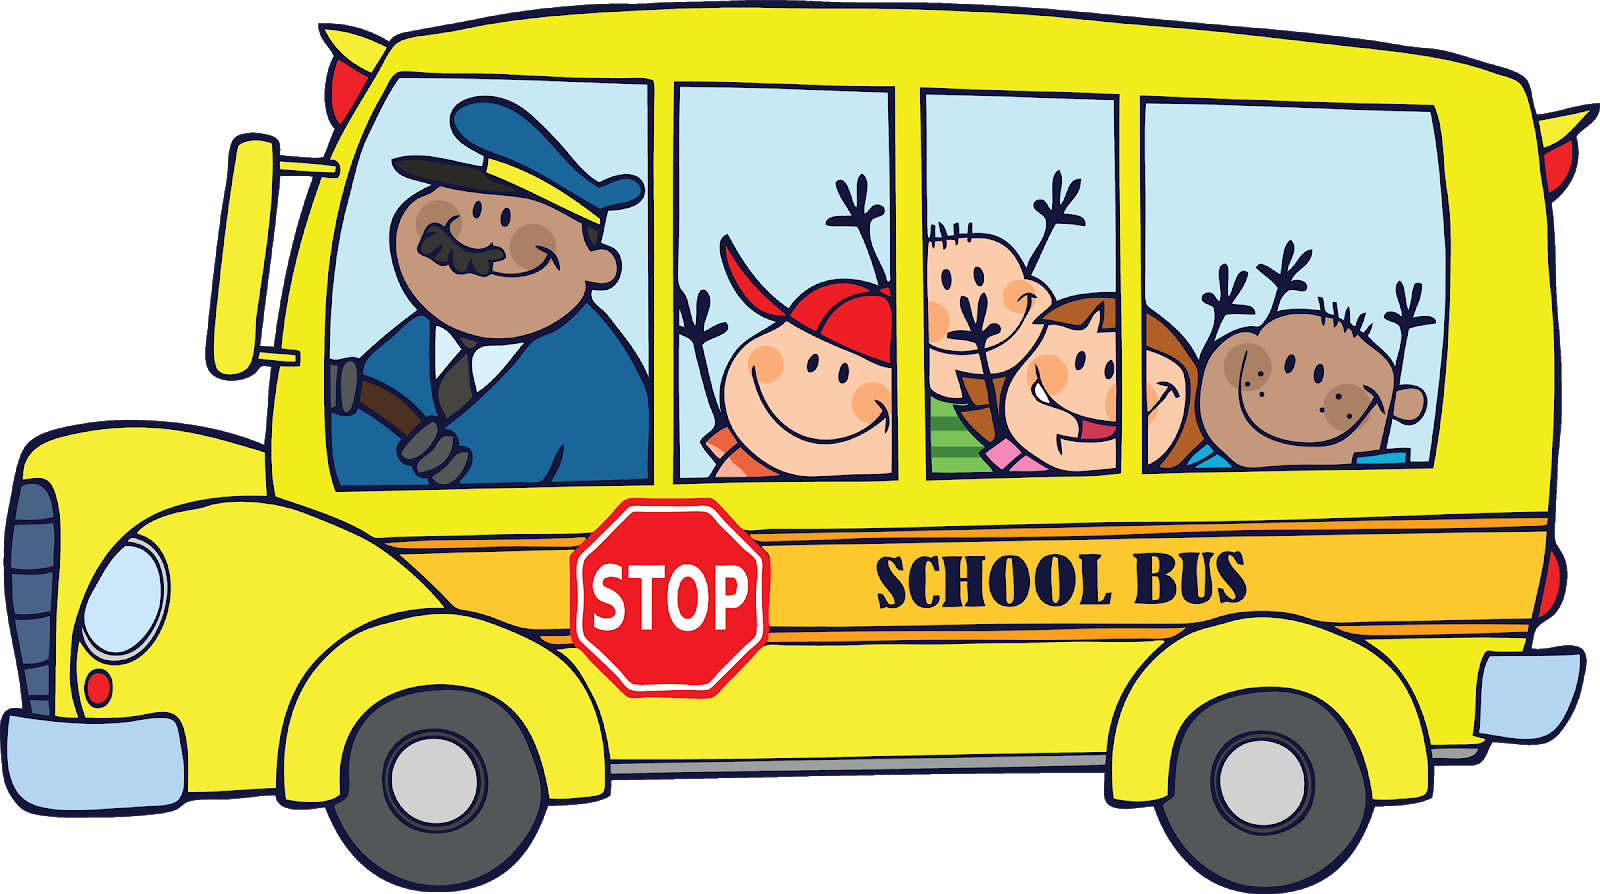 Arrival to school clipart clip art royalty free library Others Weekly Notifications May 16, 2018 clip art royalty free library